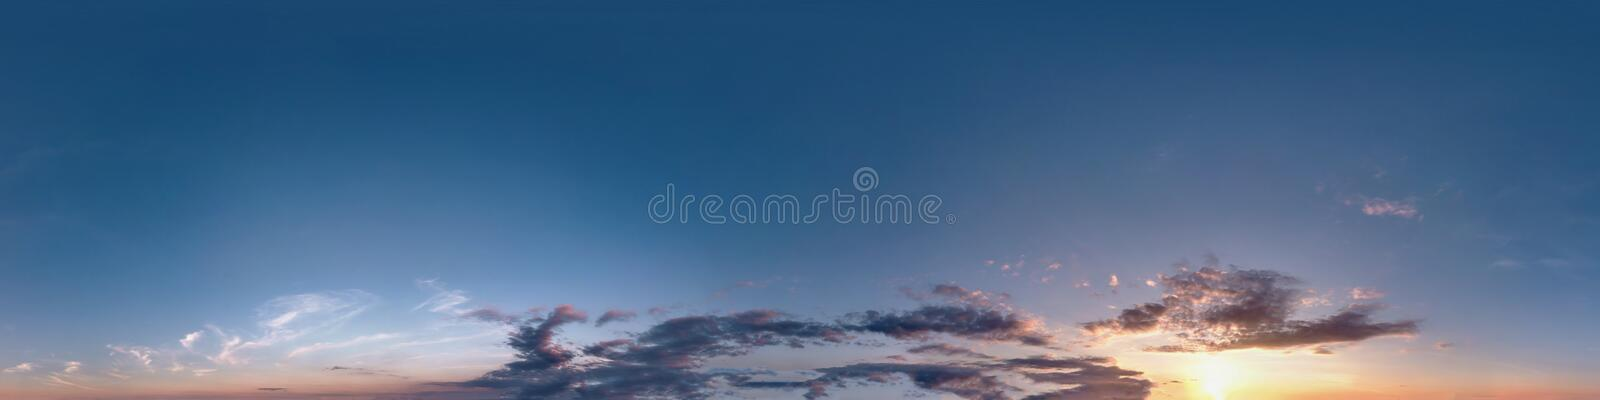 Seamless dark sunset sky hdri panorama 360 degrees angle view with beautiful clouds  with zenith for use in 3d graphics as sky. Dome or edit drone shot stock photos